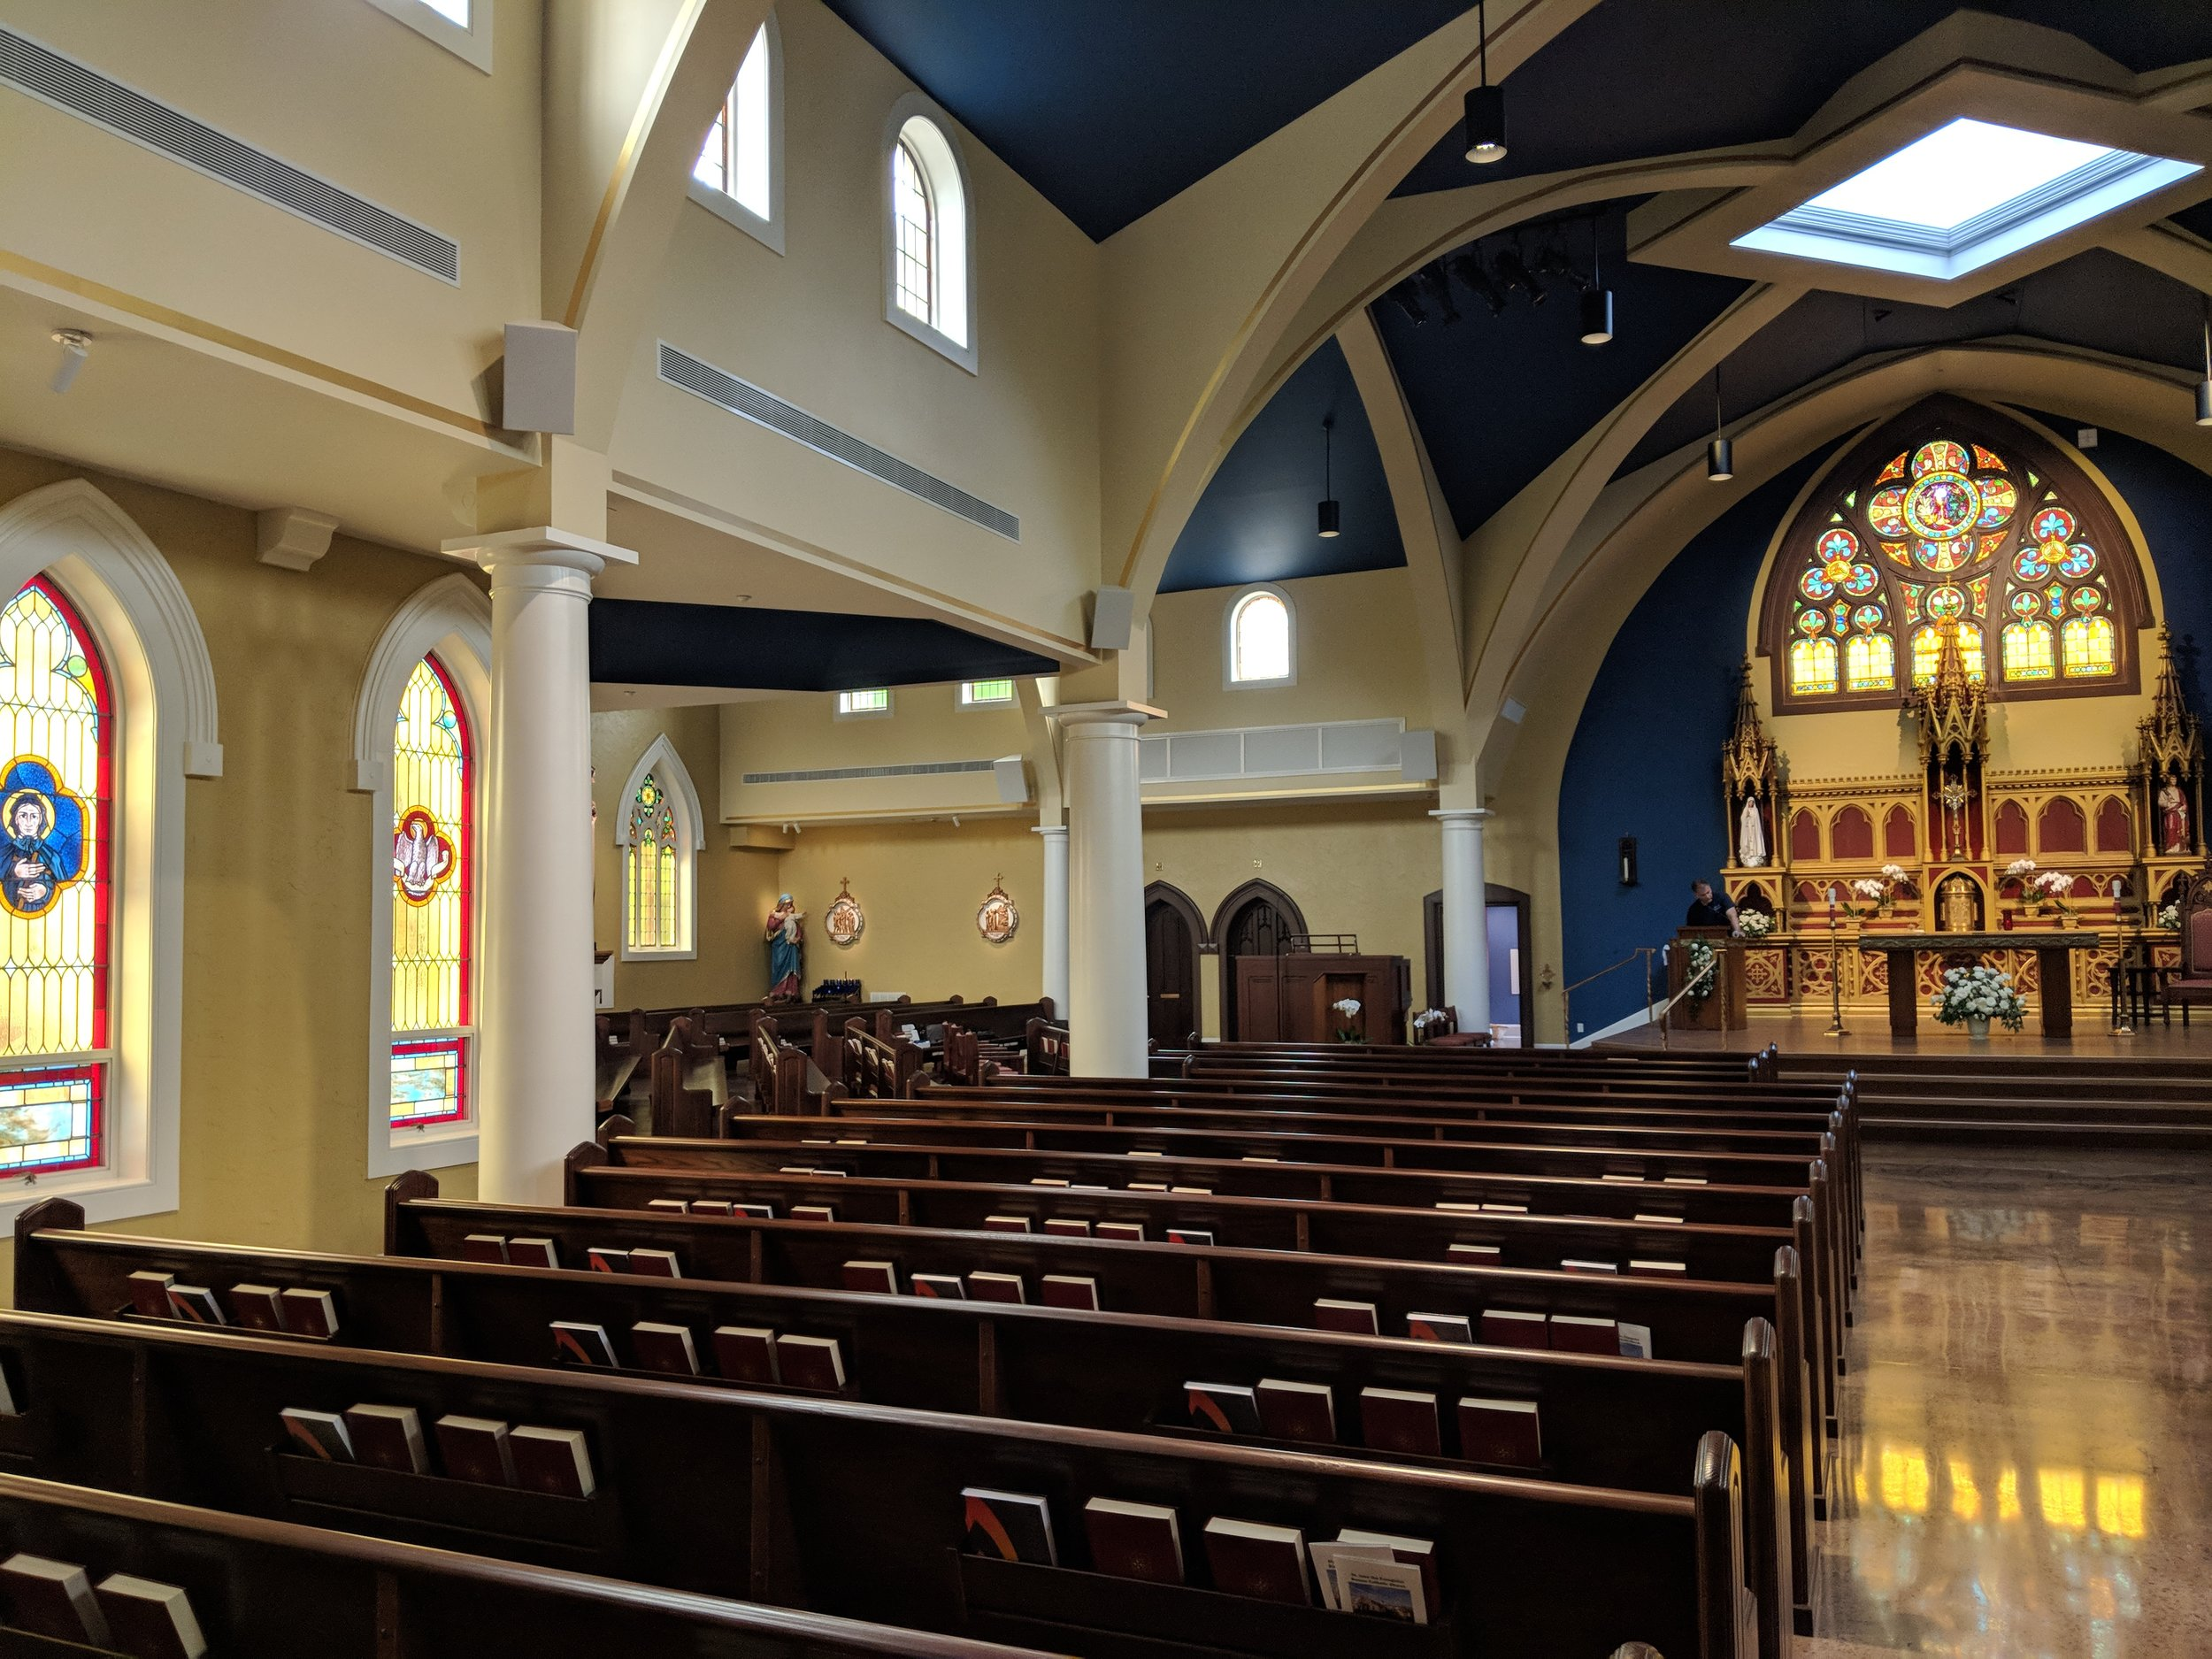 Four CAMM DT-800 speakers were used to provide audio coverage in the transepts. CAMM DT-400 speakers were used in the nave.